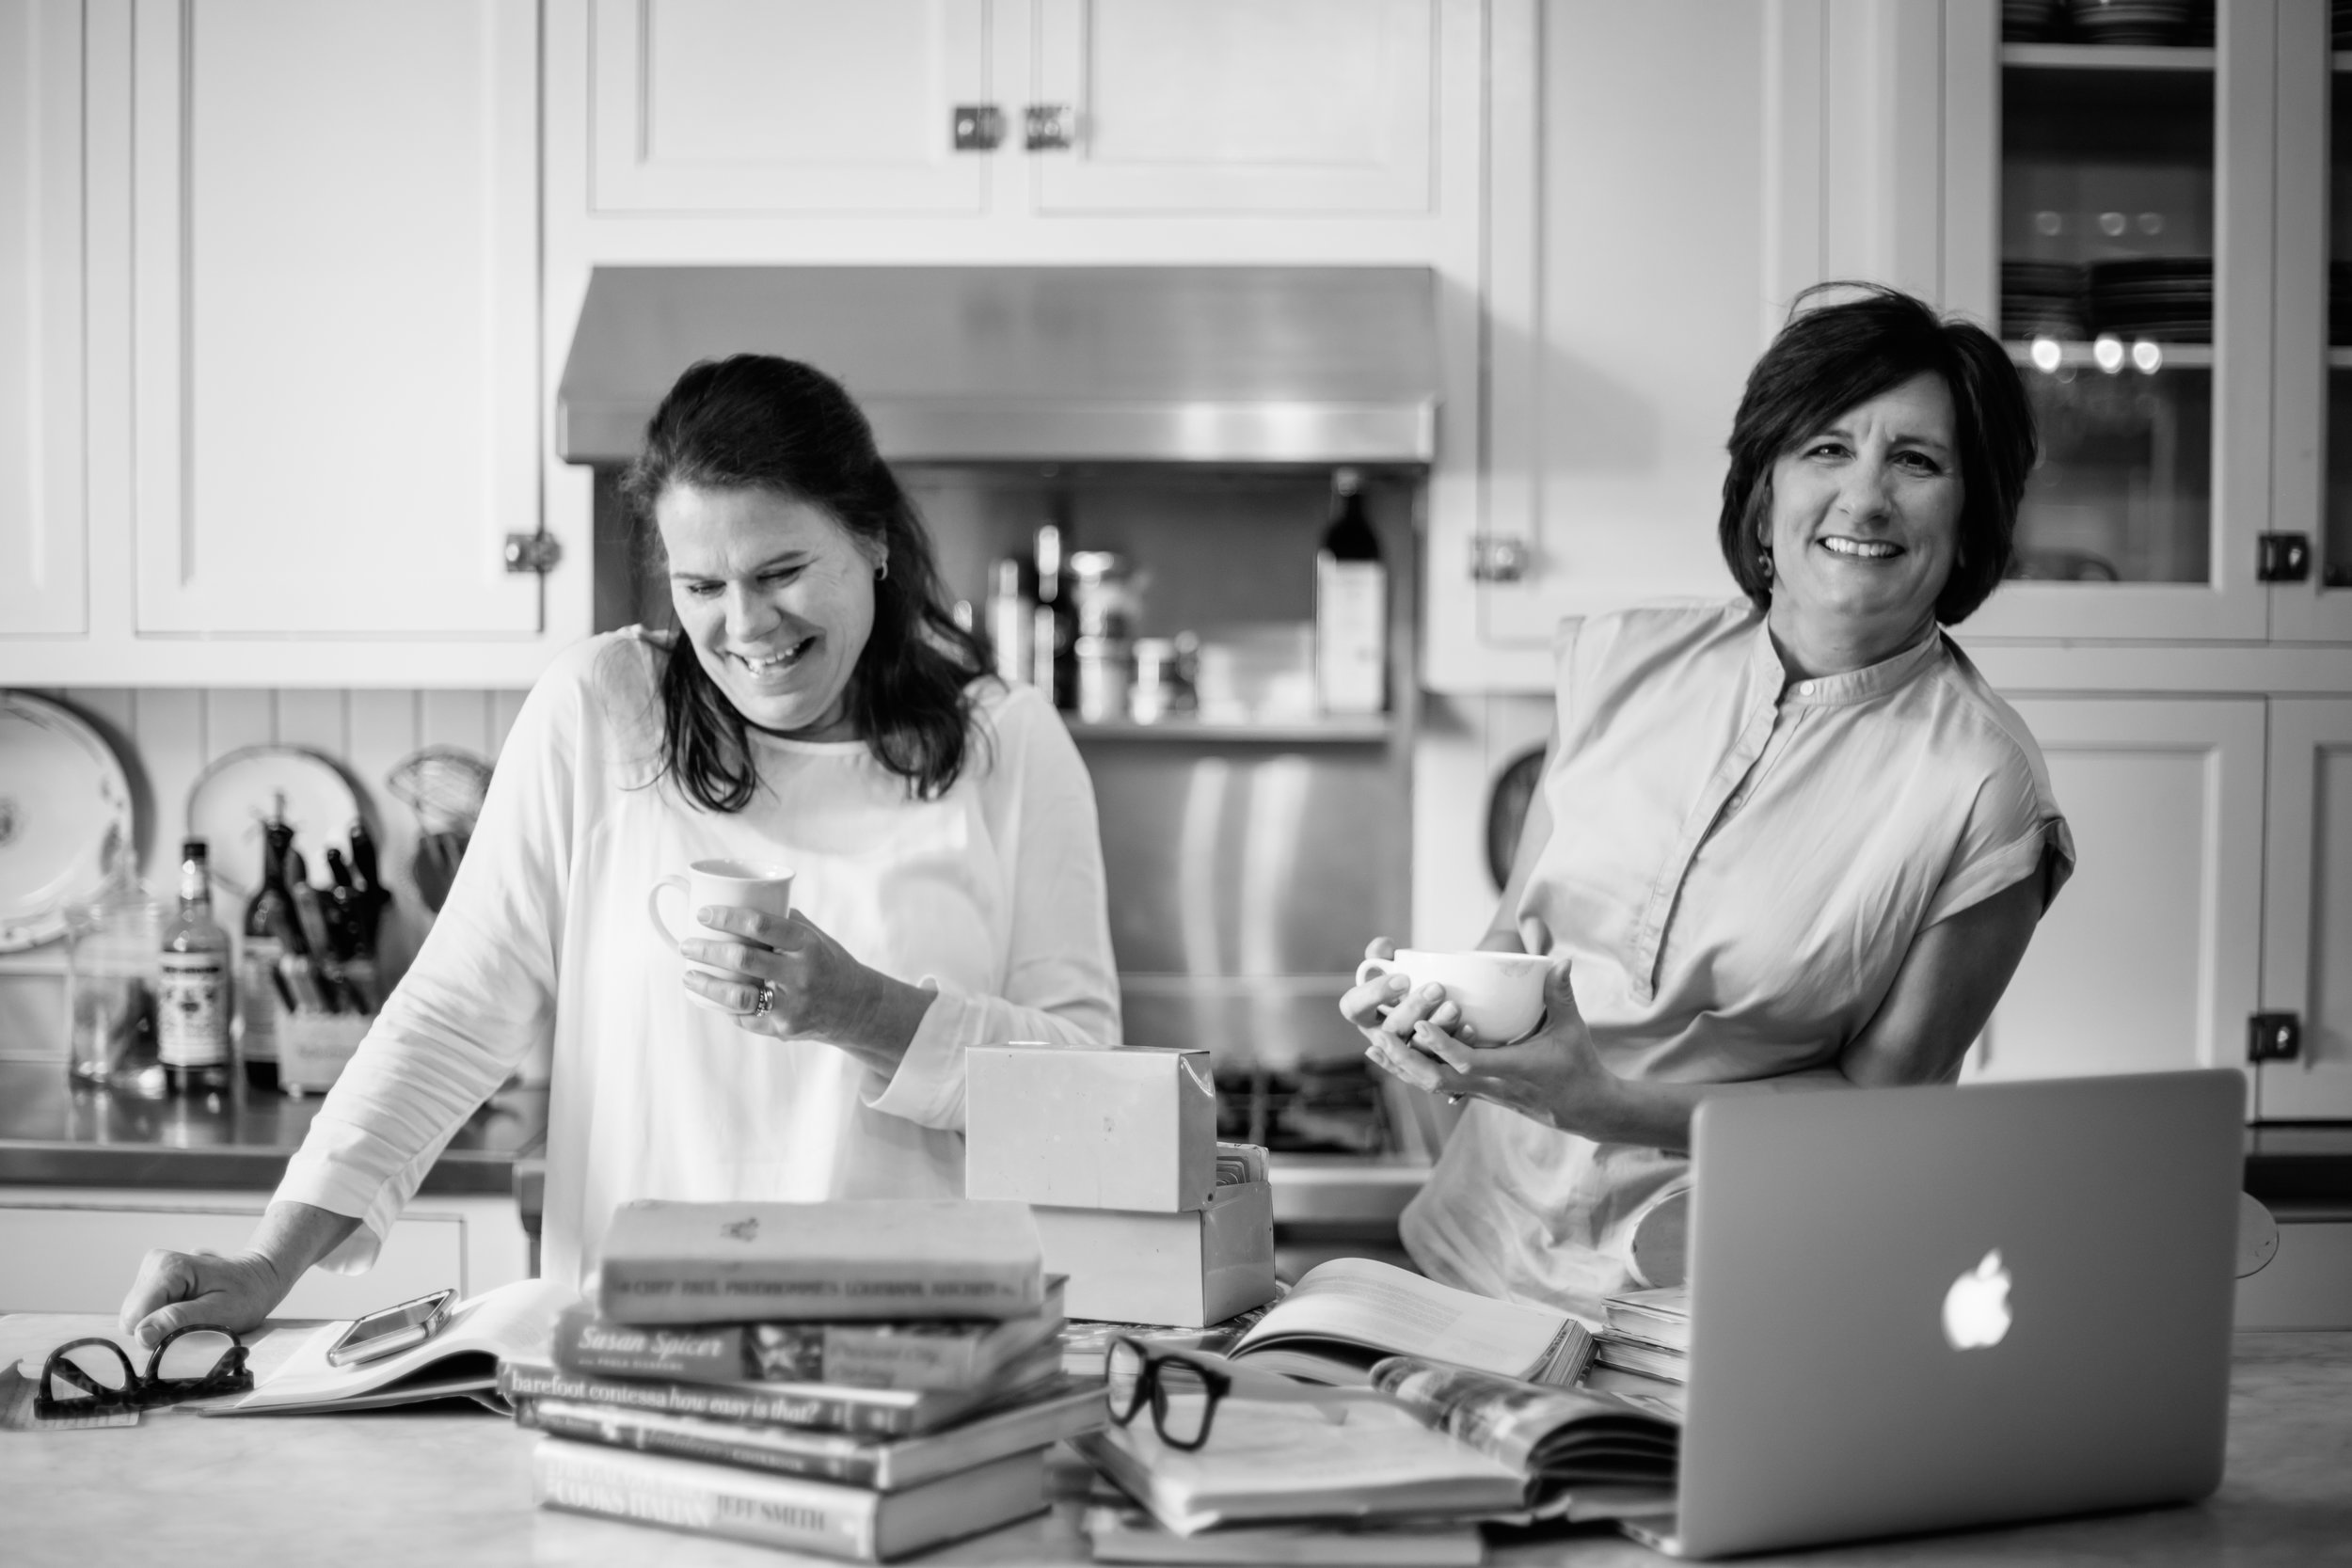 Our Story… - JOAN AND SHANNON FOUNDED INGLE EATS WITH ONE GOAL IN MIND: TO SEND FAMILIES BACK TO THE DINNER TABLE TO CONNECT WITH EACH OTHER OVER DELICIOUS, CREATIVE MEALS.